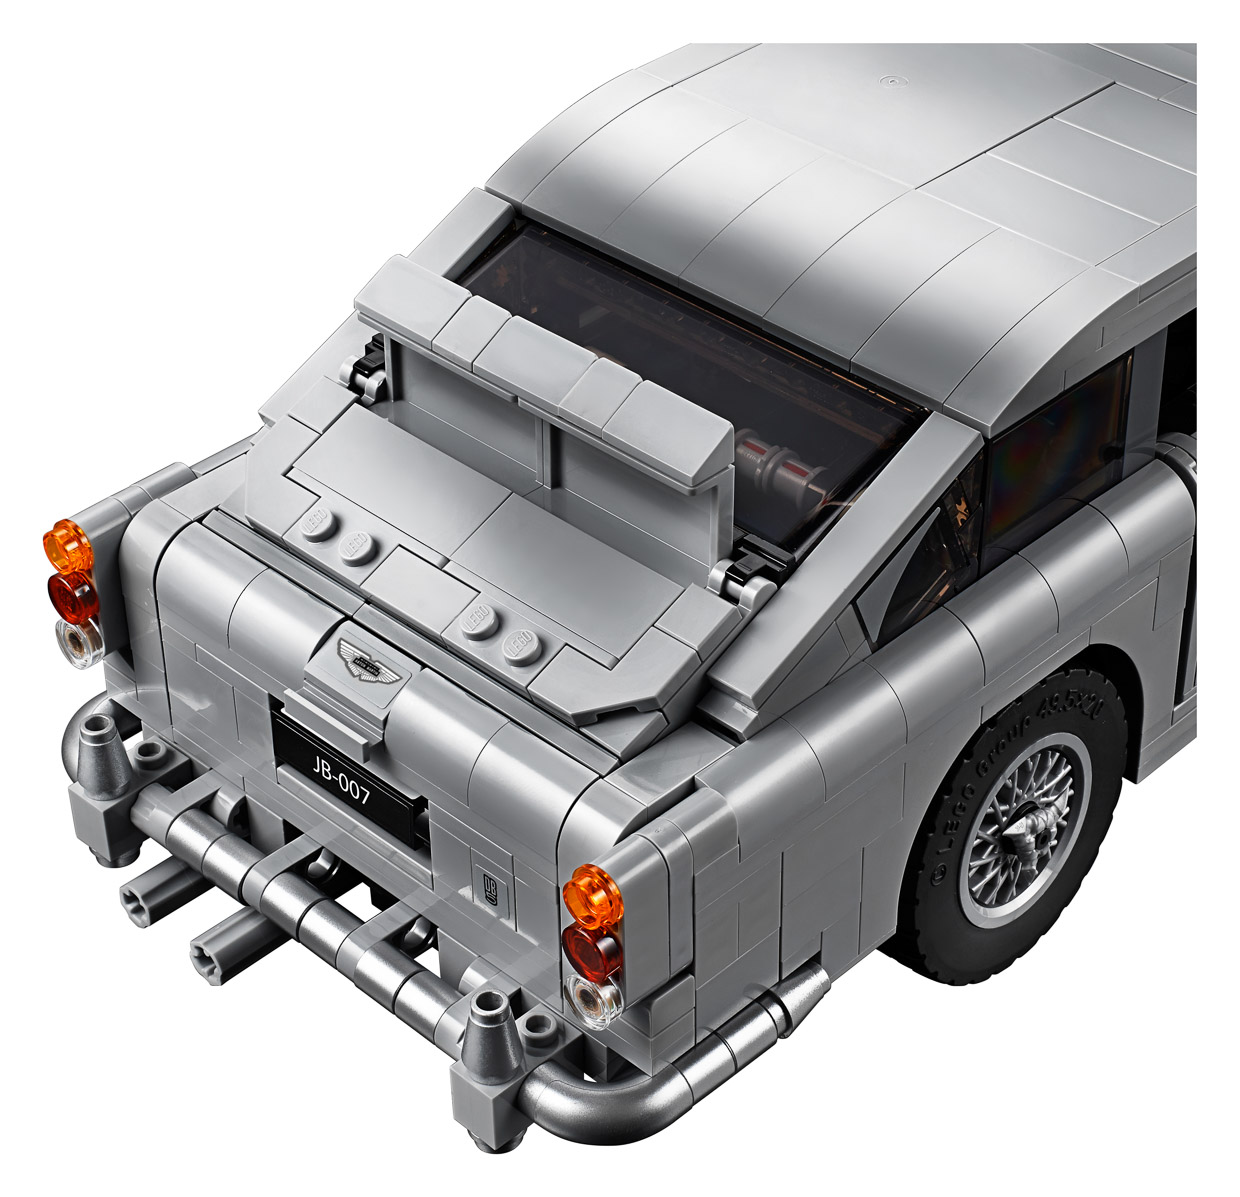 LEGO James Bond Aston Martin DB5 Has A Working Ejector Seat